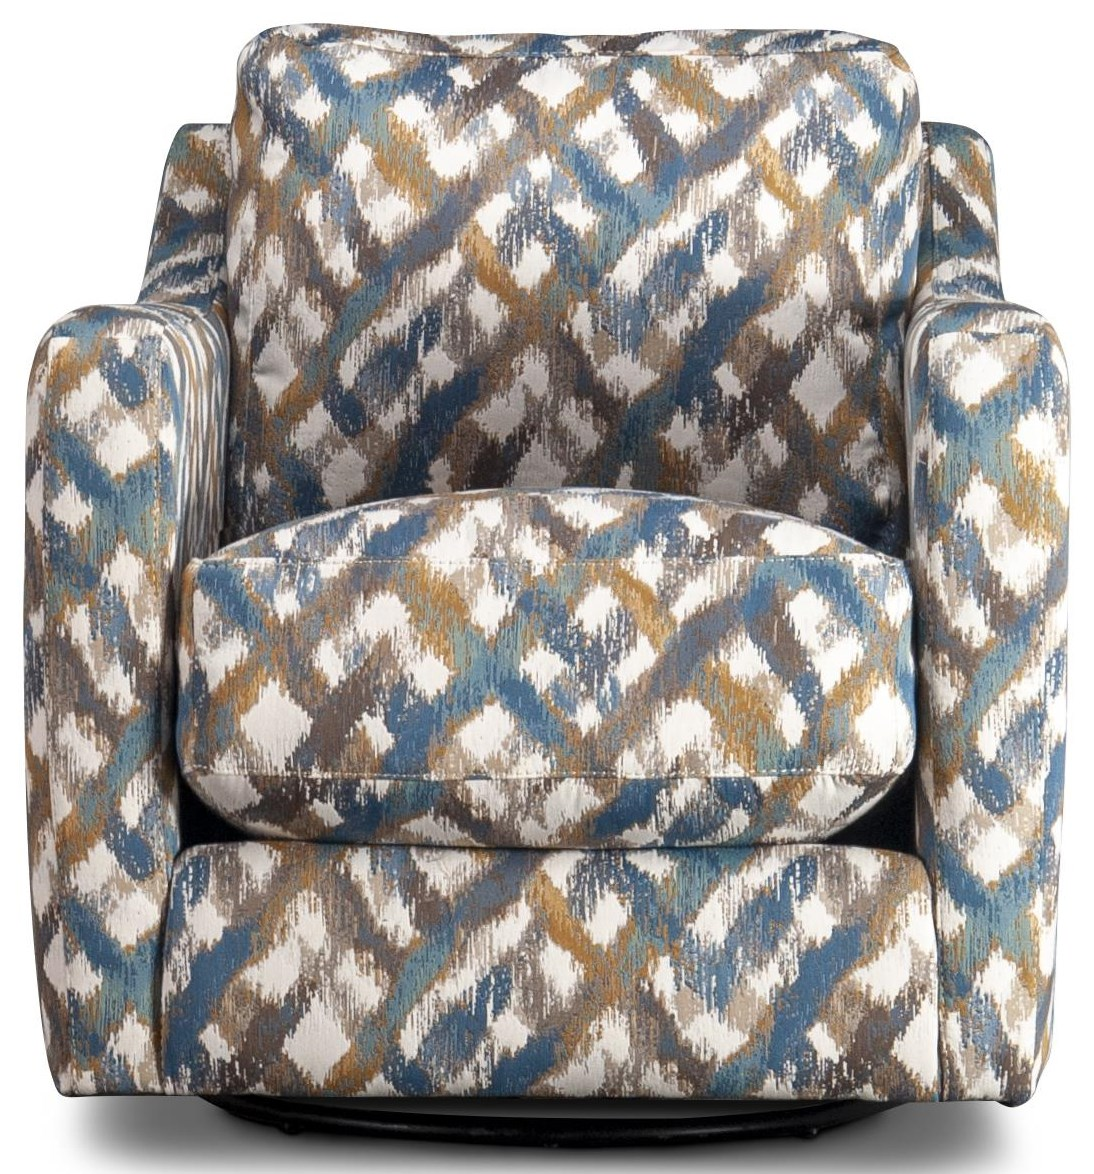 Redding Redding Accent Swivel Chair by Franklin at Morris Home